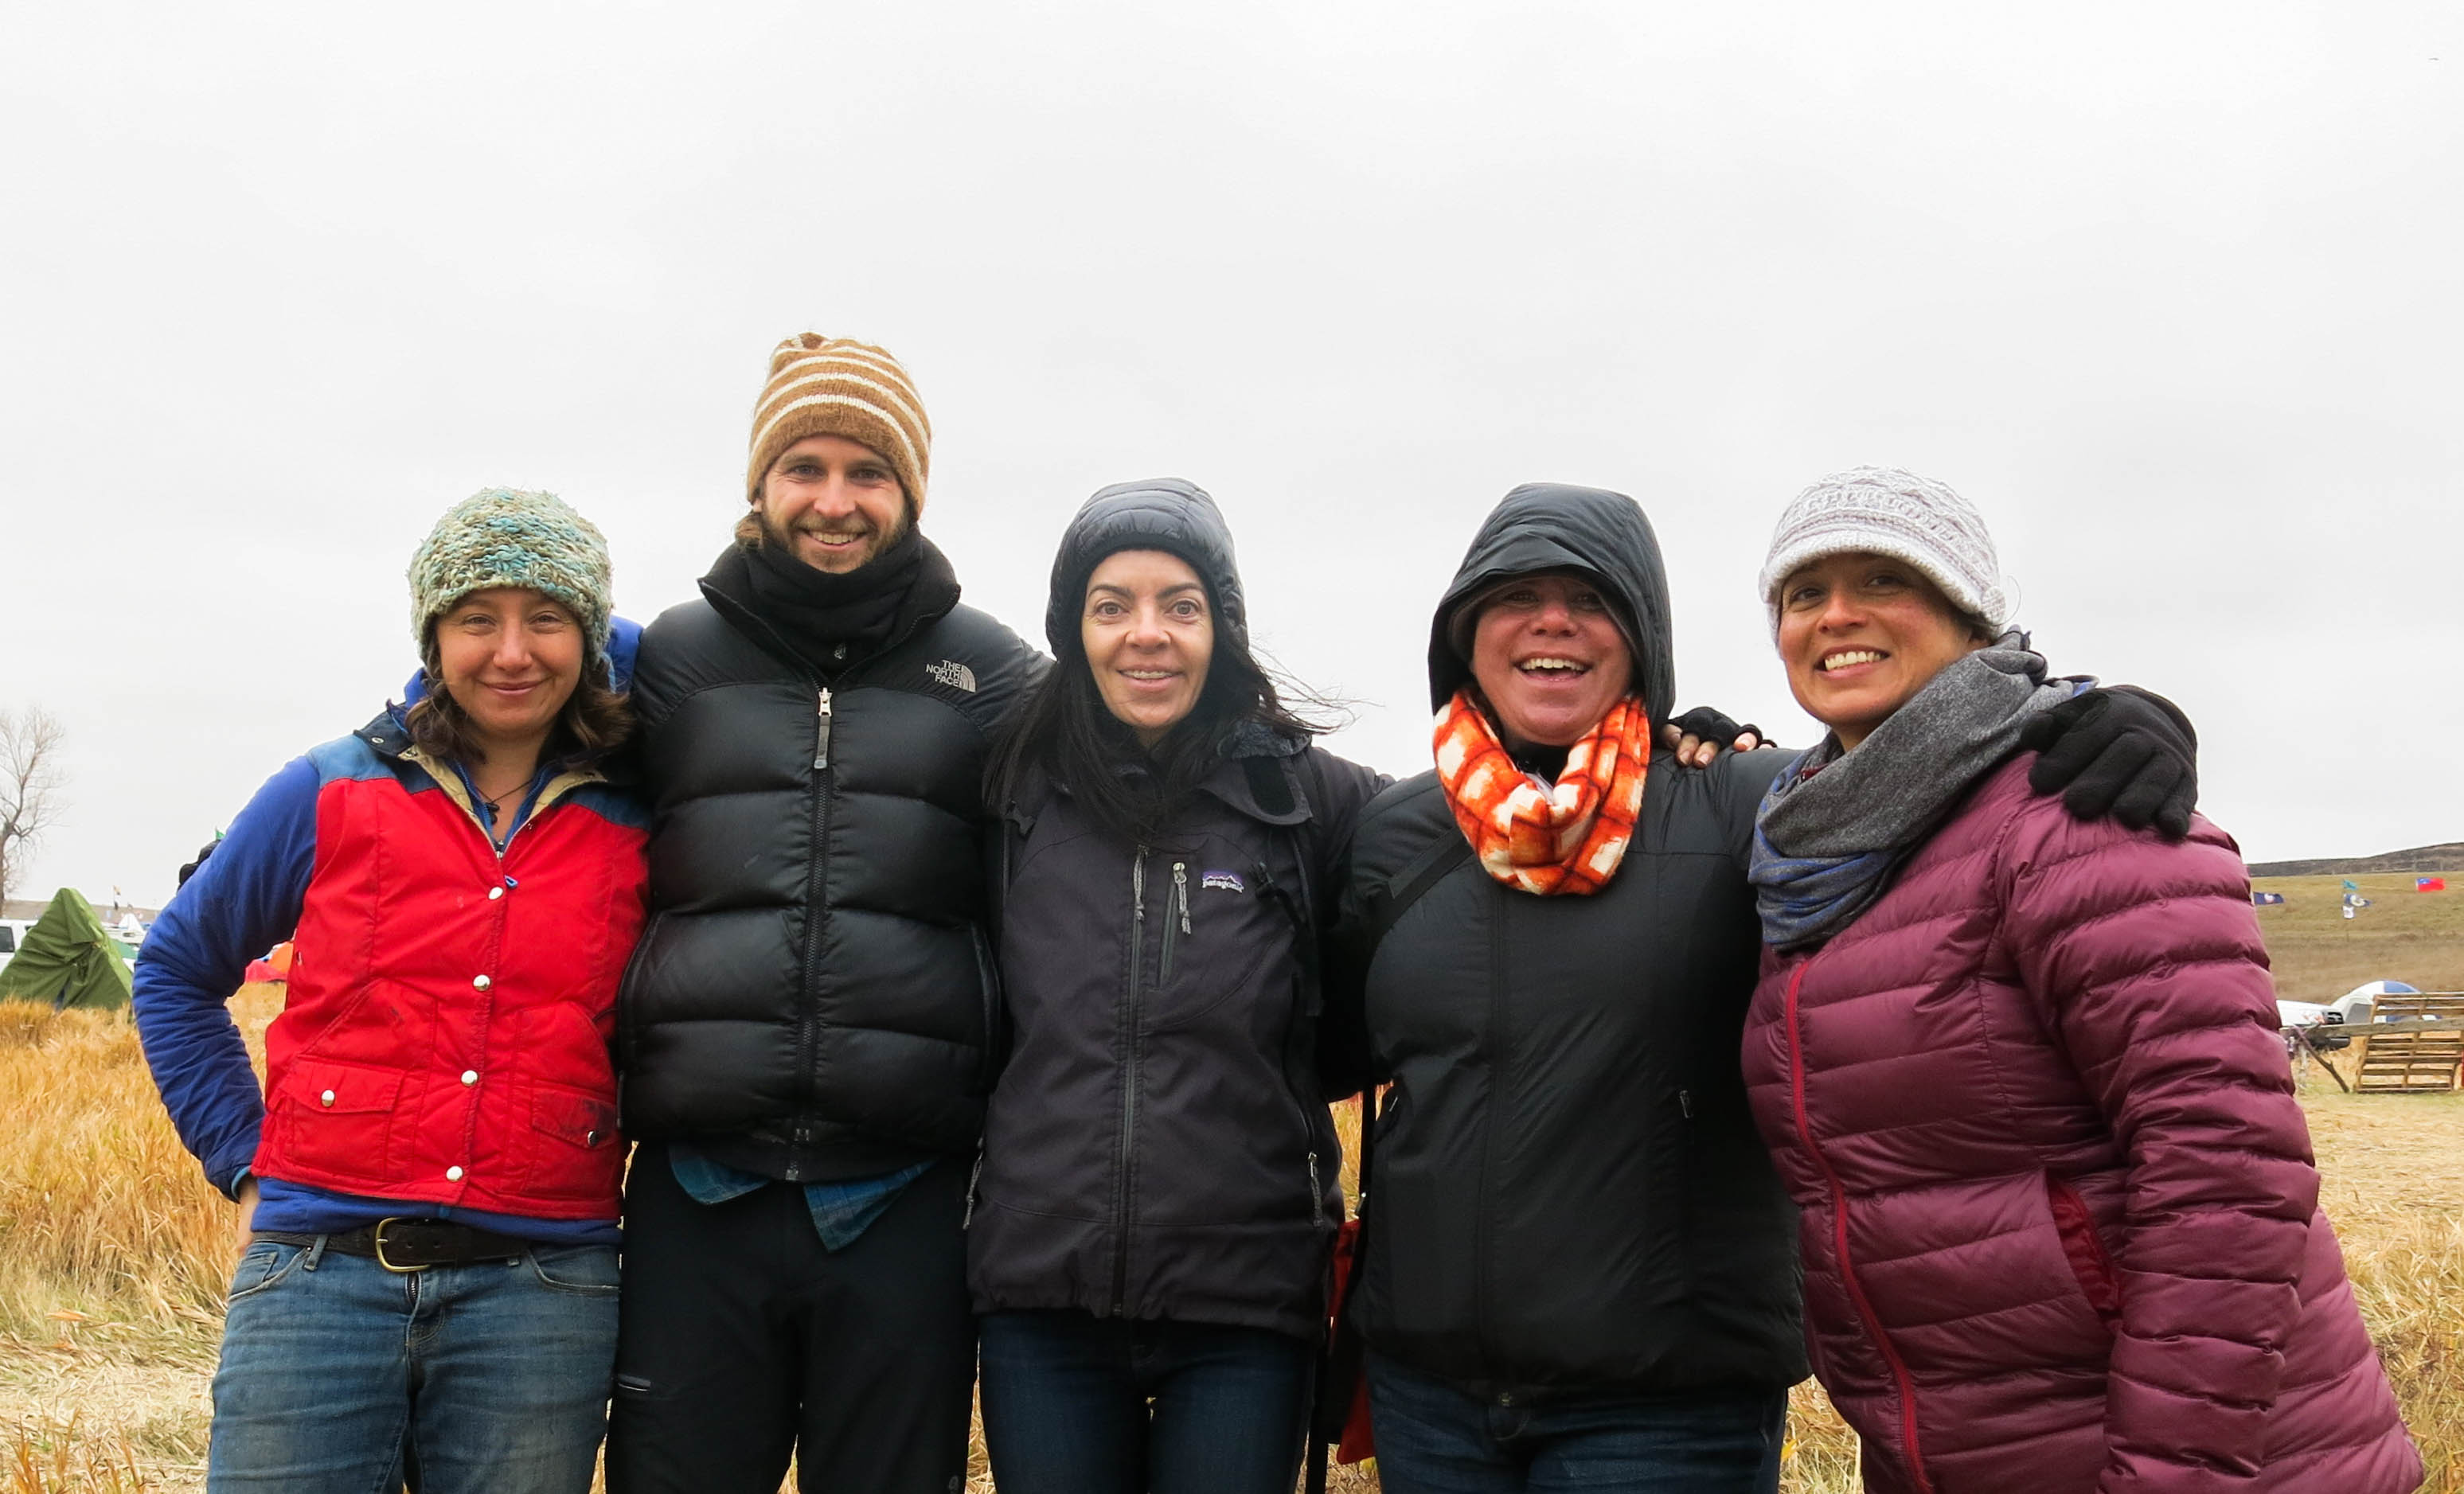 Bria's group visiting Standing Rock